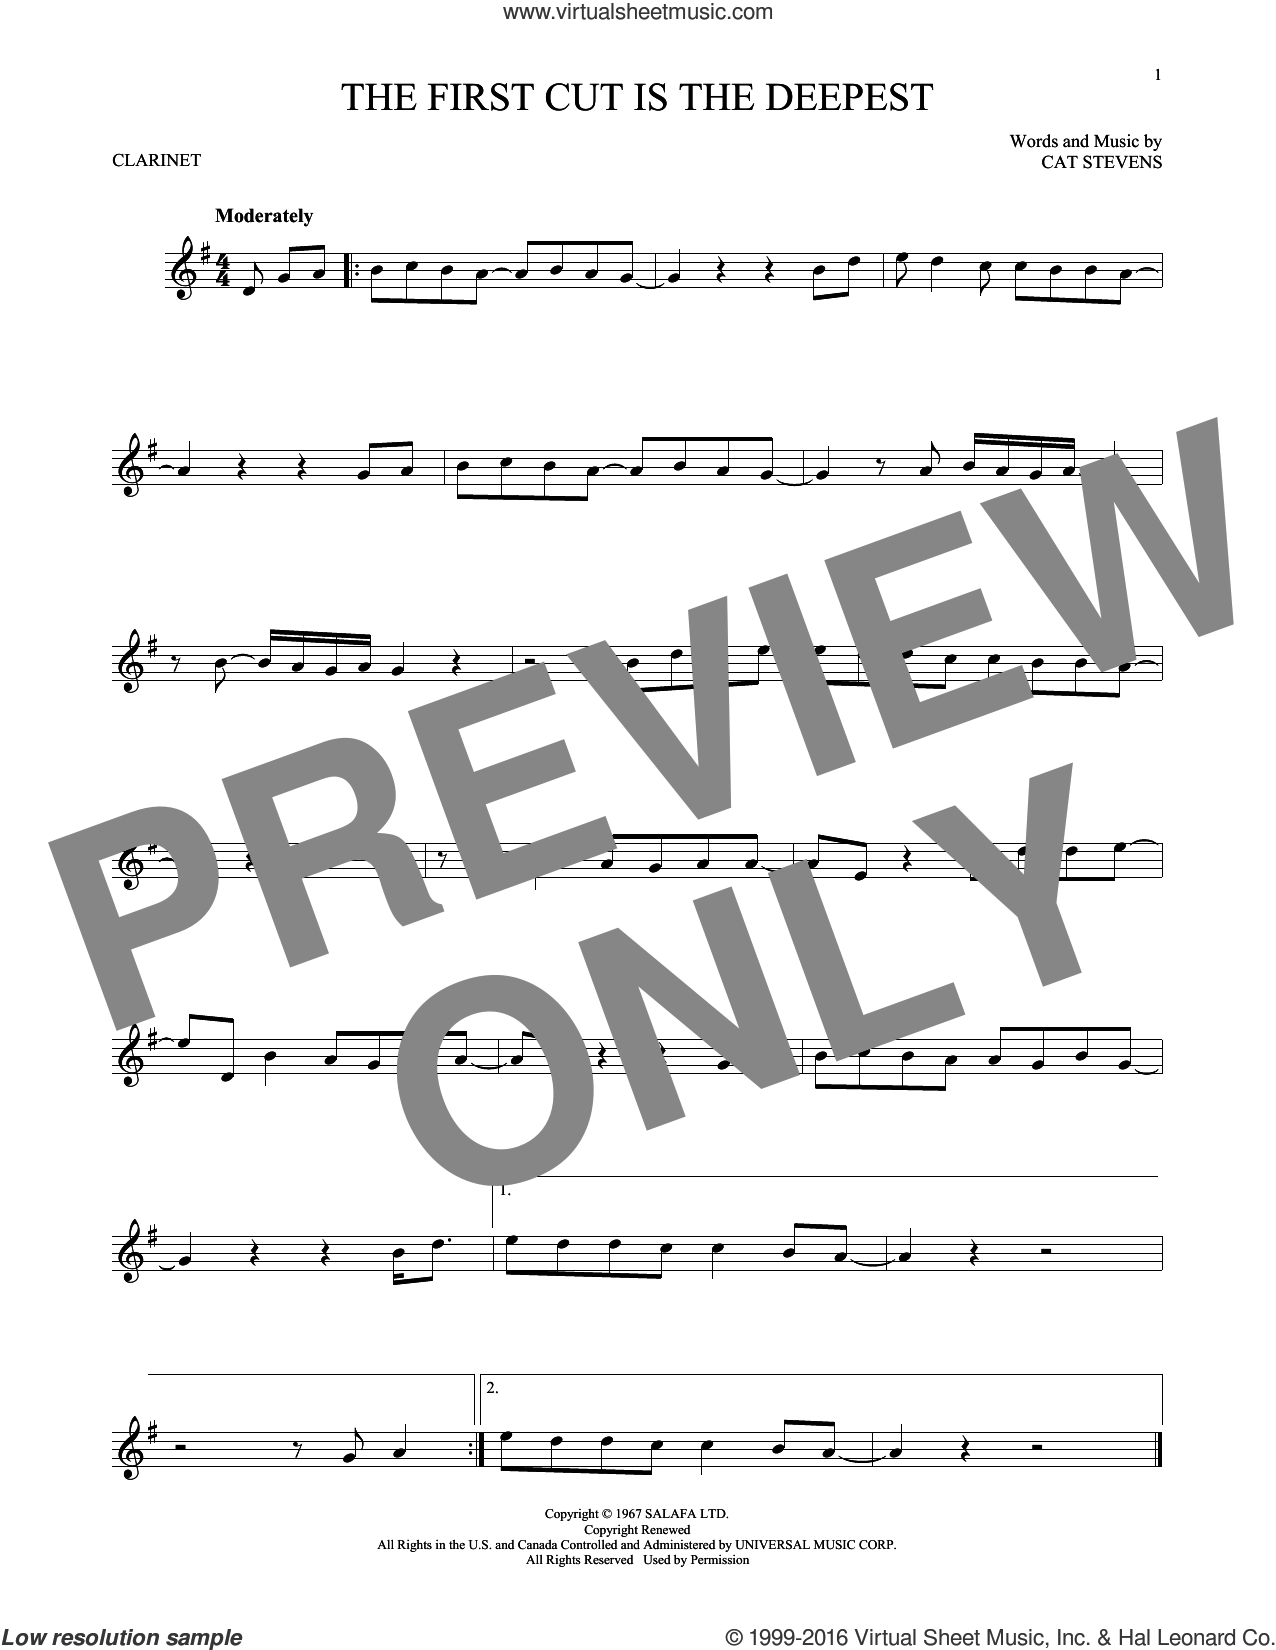 The First Cut Is The Deepest sheet music for clarinet solo by Cat Stevens, Rod Stewart and Sheryl Crow. Score Image Preview.